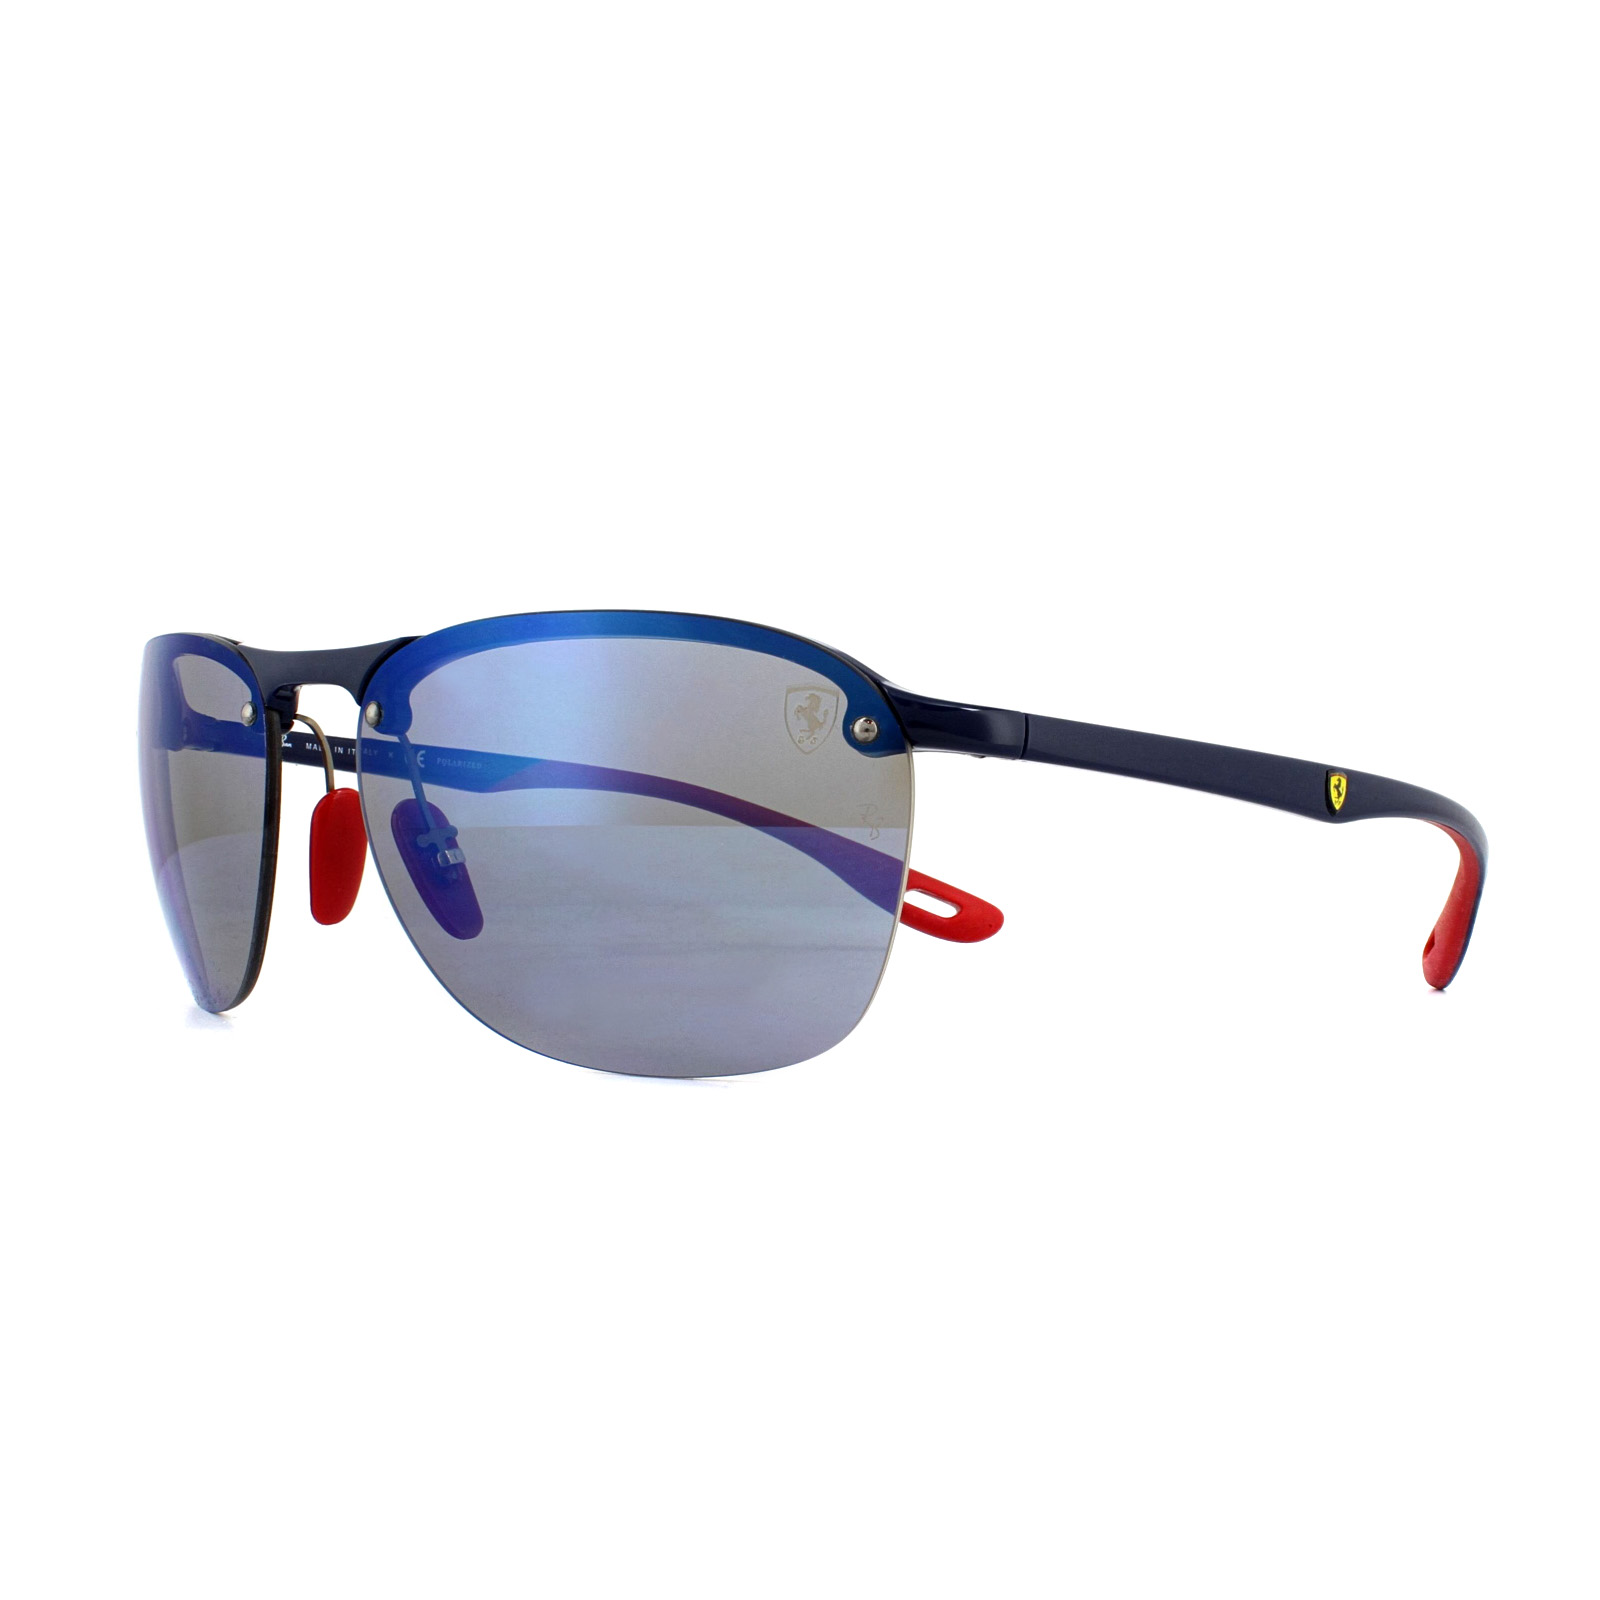 3724043fe0 Sentinel Ray-Ban Sunglasses Scuderia Ferrari RB4302M F606H0 Blue Red  Polarized Blue Mirro